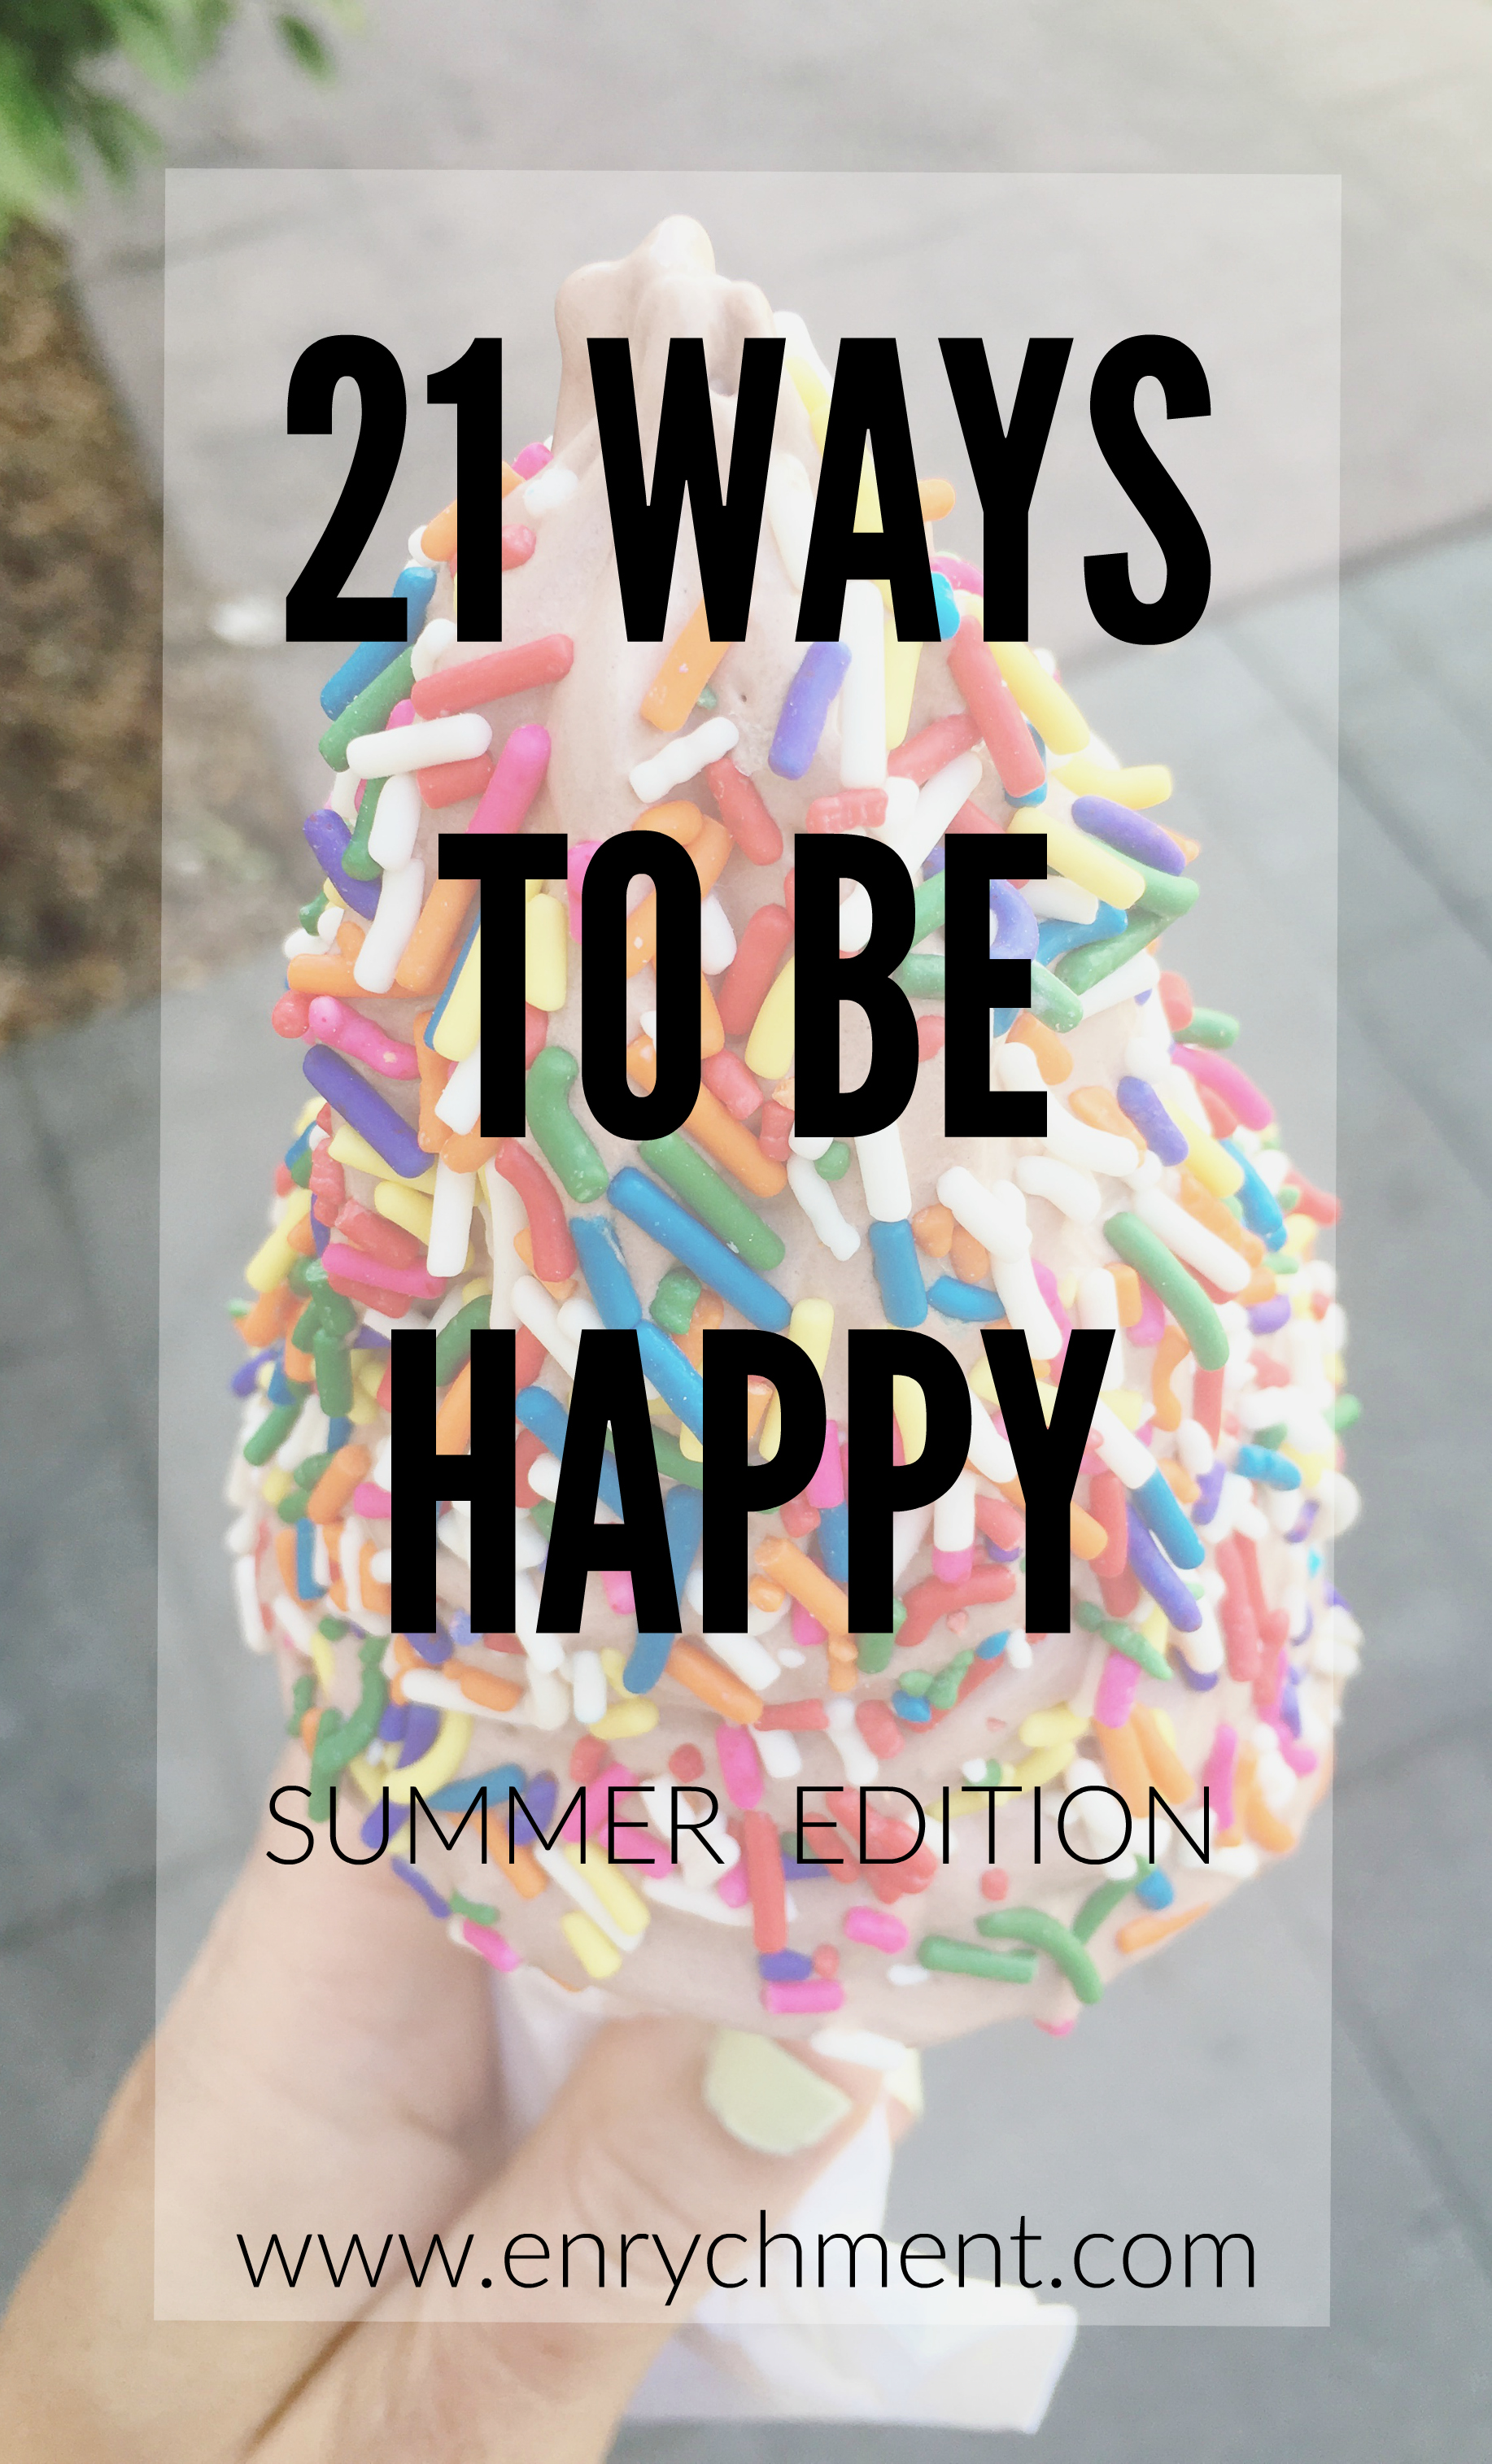 21 Ways To Be Happy in Summer